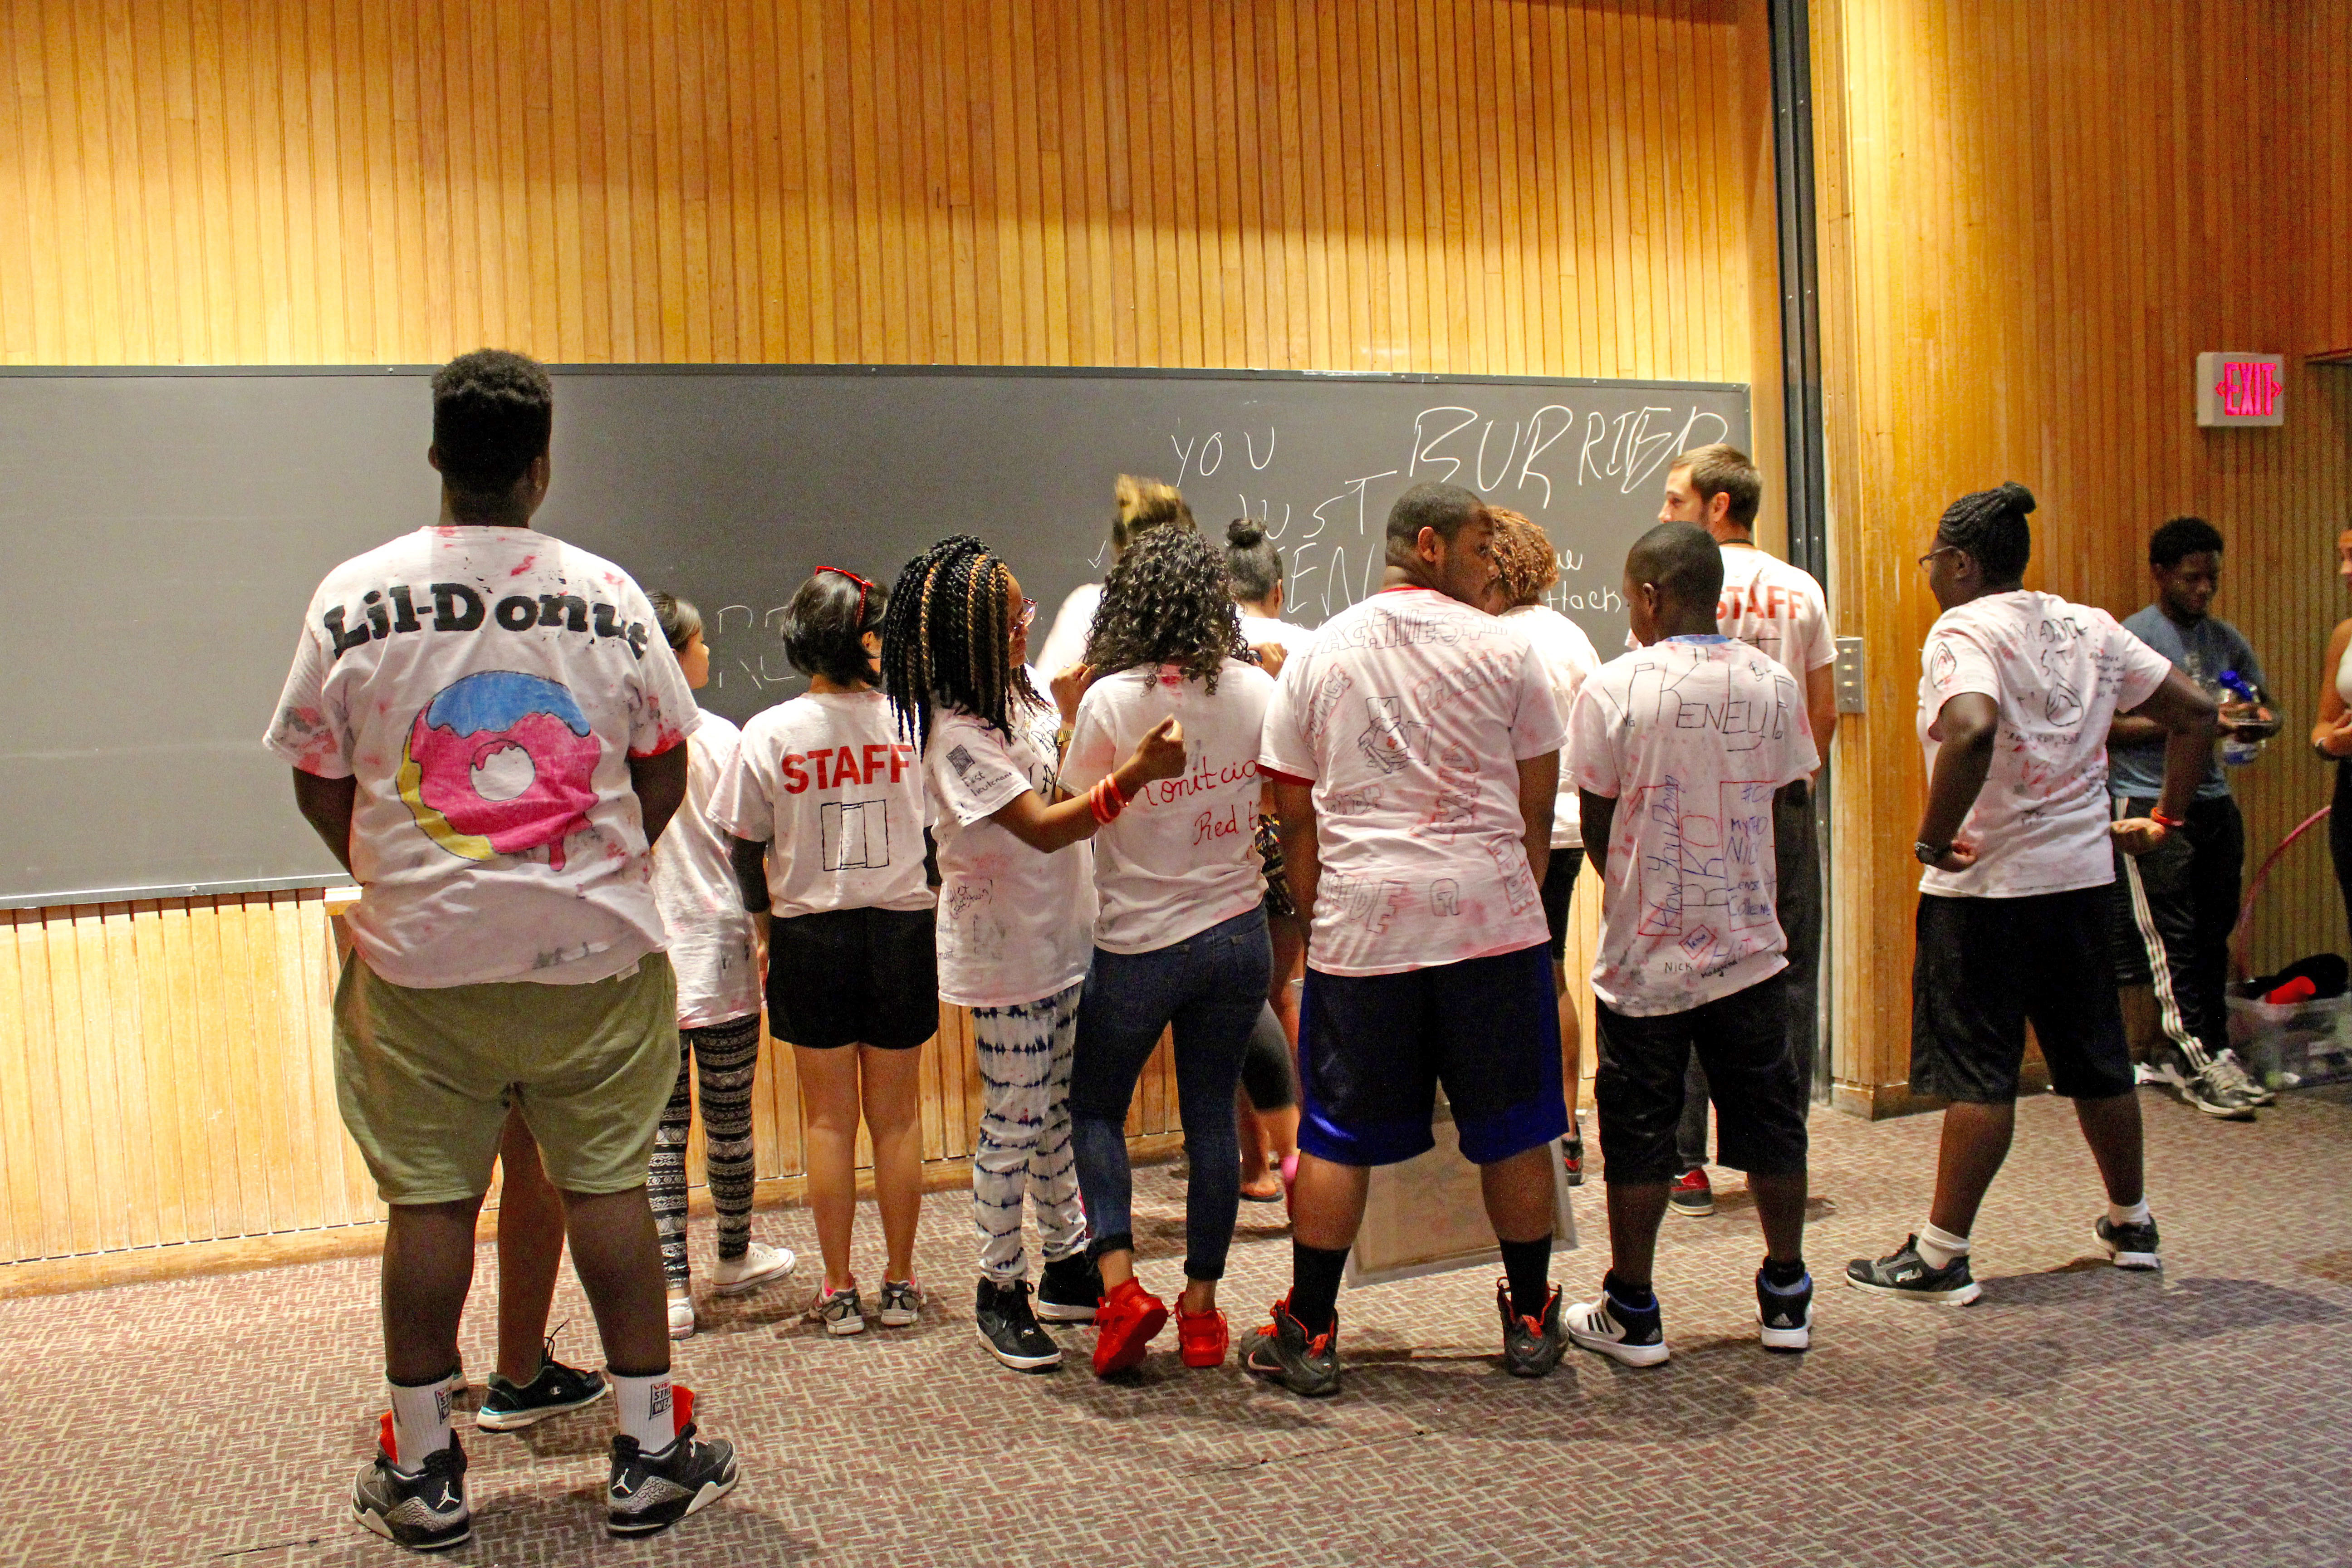 Red Team showed off their t shirts.